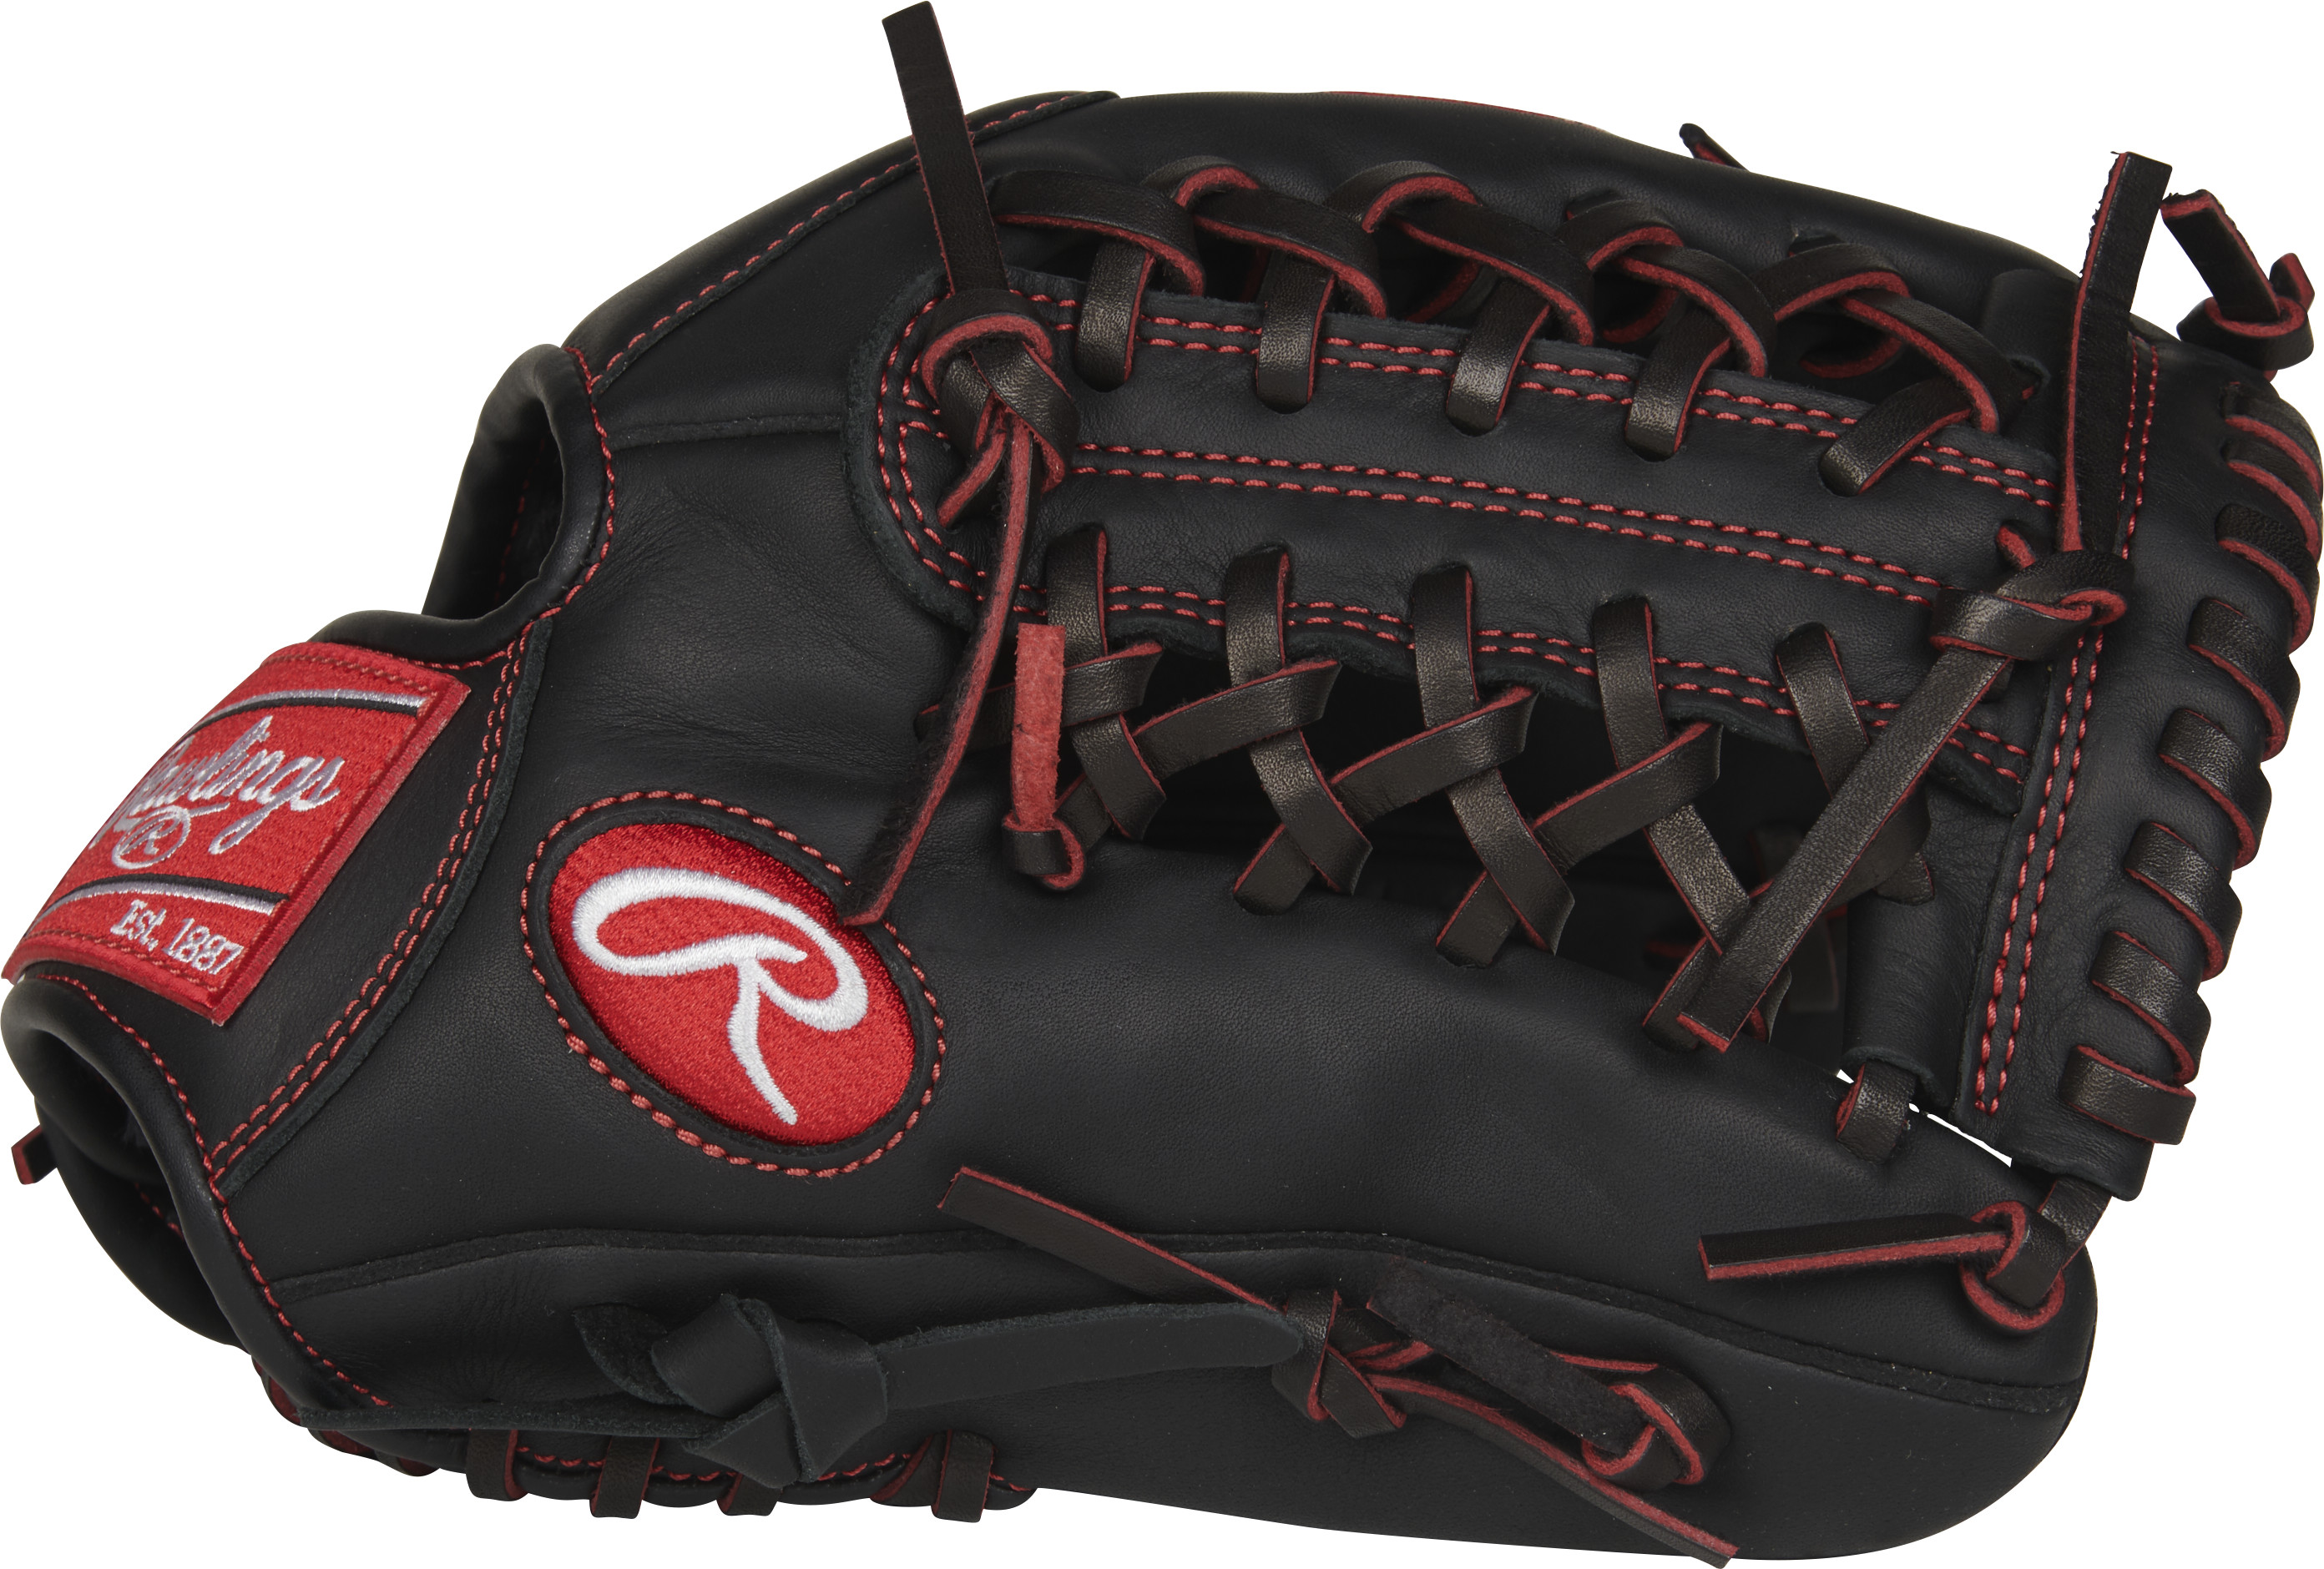 http://www.bestbatdeals.com/images/gloves/rawlings/R9YPT4-4B-3.jpg